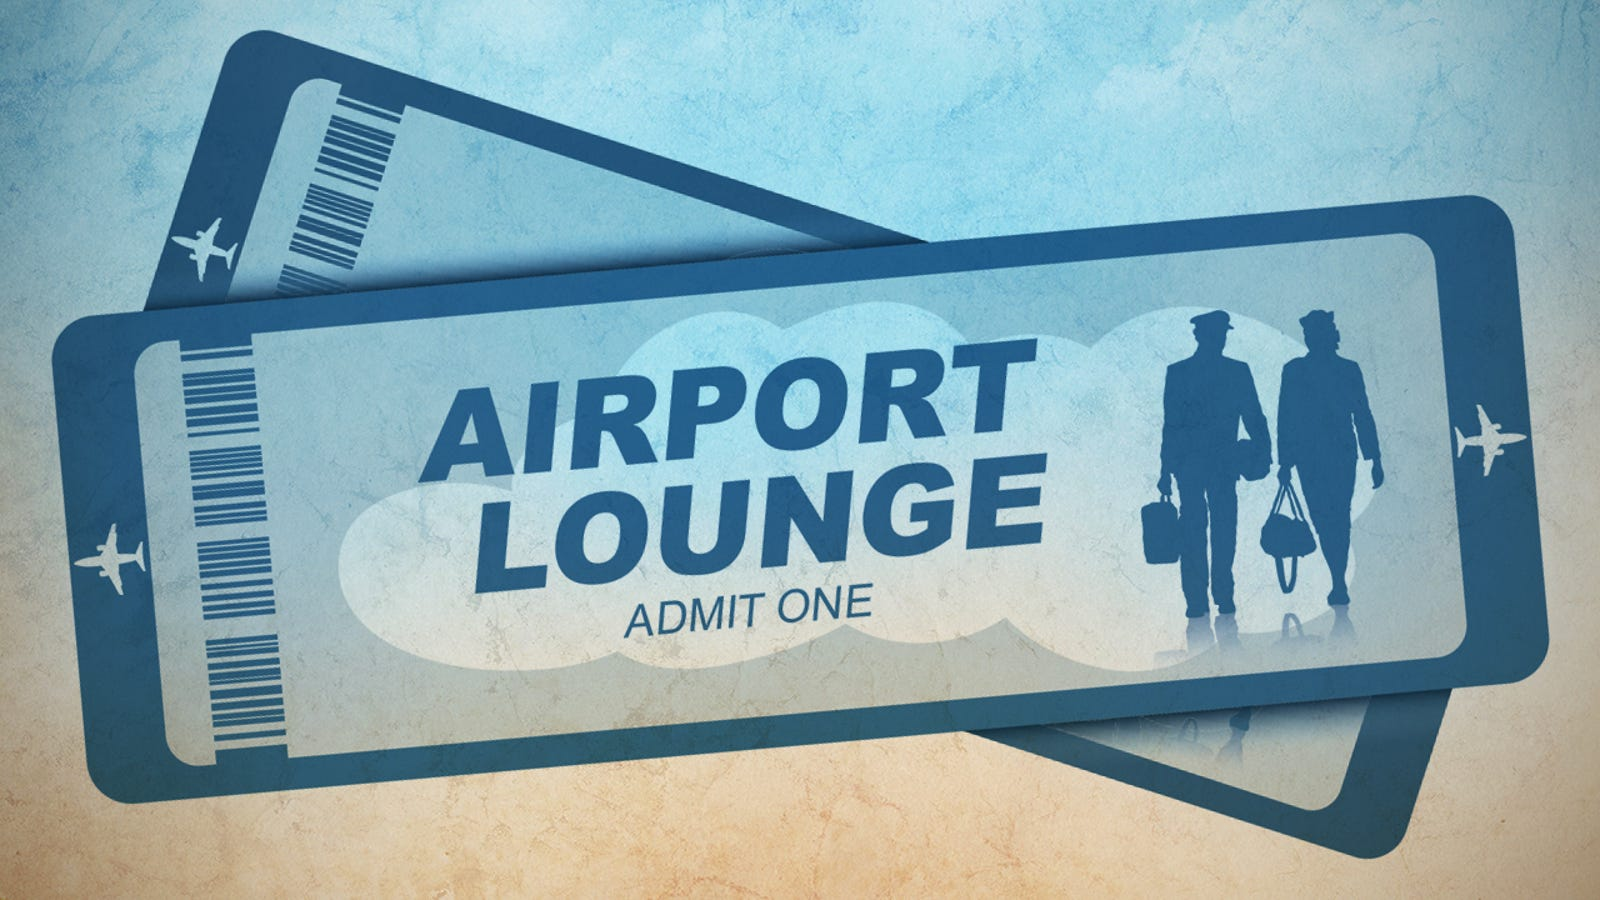 How to fly from Simferopol Lifehack airport